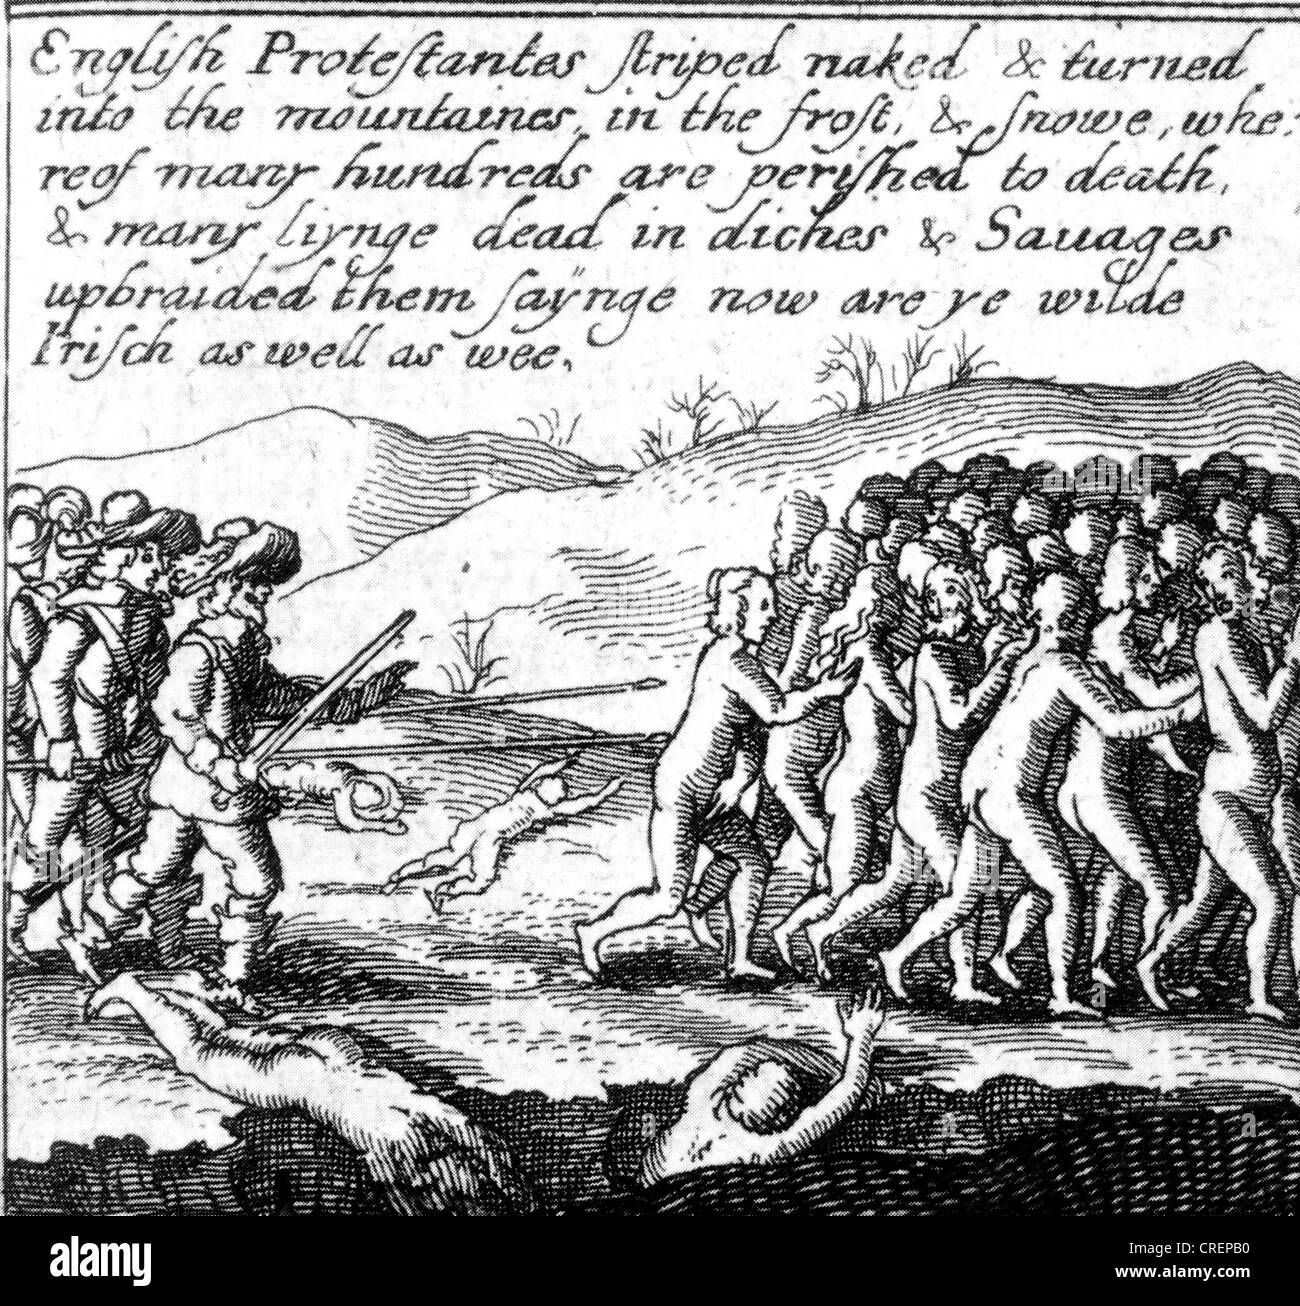 IRISH REBELLION 1641 Woodcut propaganda by Protestant settlers showing them  being driven naked into the countryside by Catholics